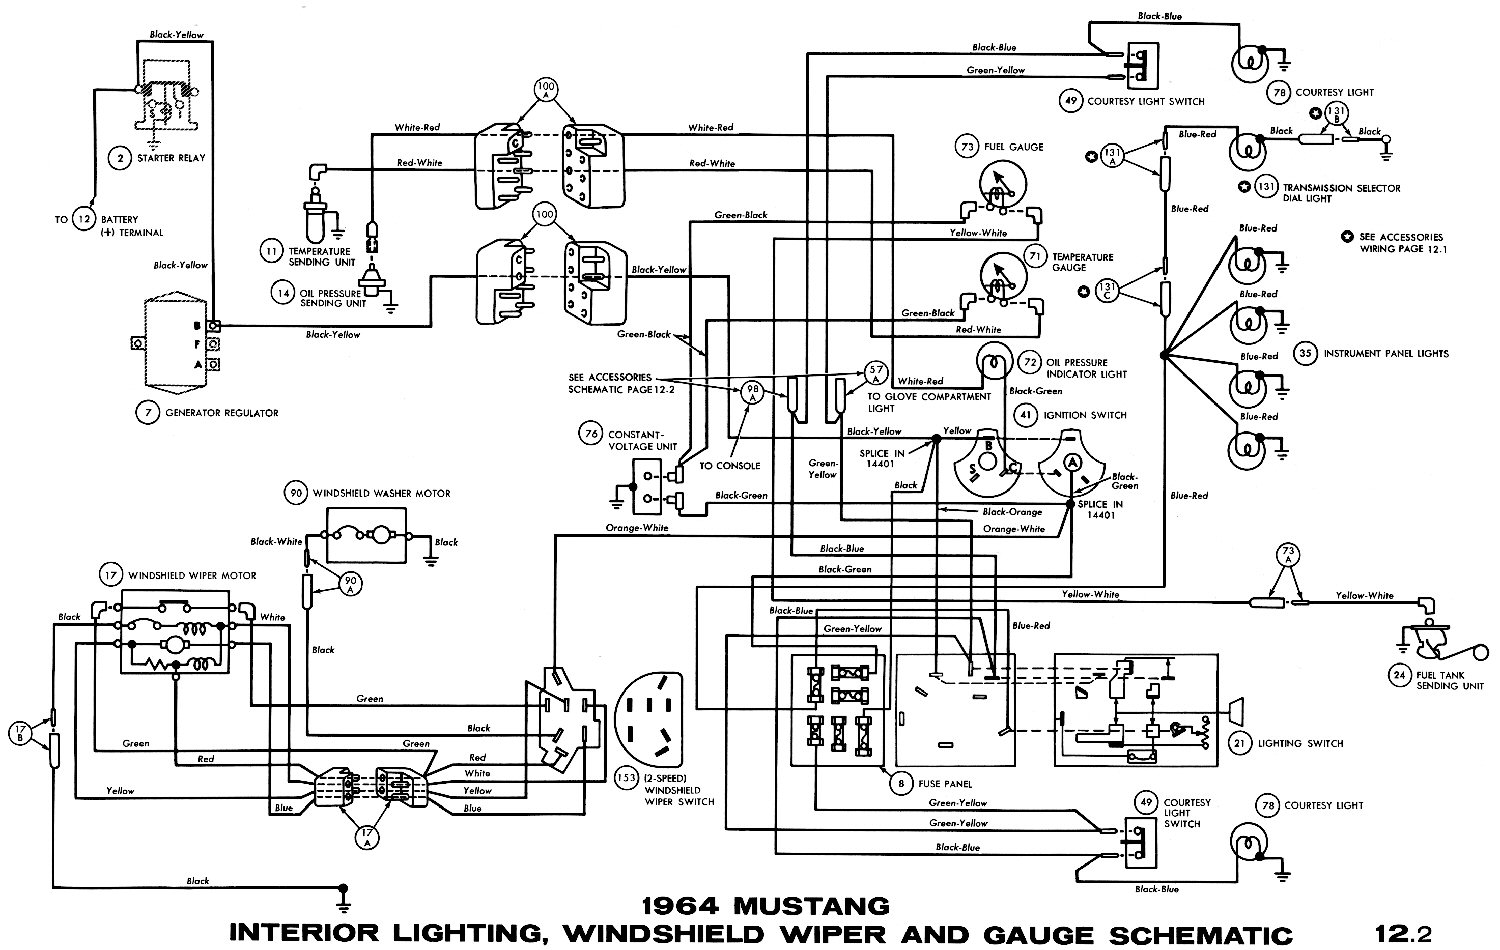 1964k mustang wiring diagrams mustang engine diagram \u2022 free wiring 2005 ford mustang instrument cluster wiring diagram at crackthecode.co